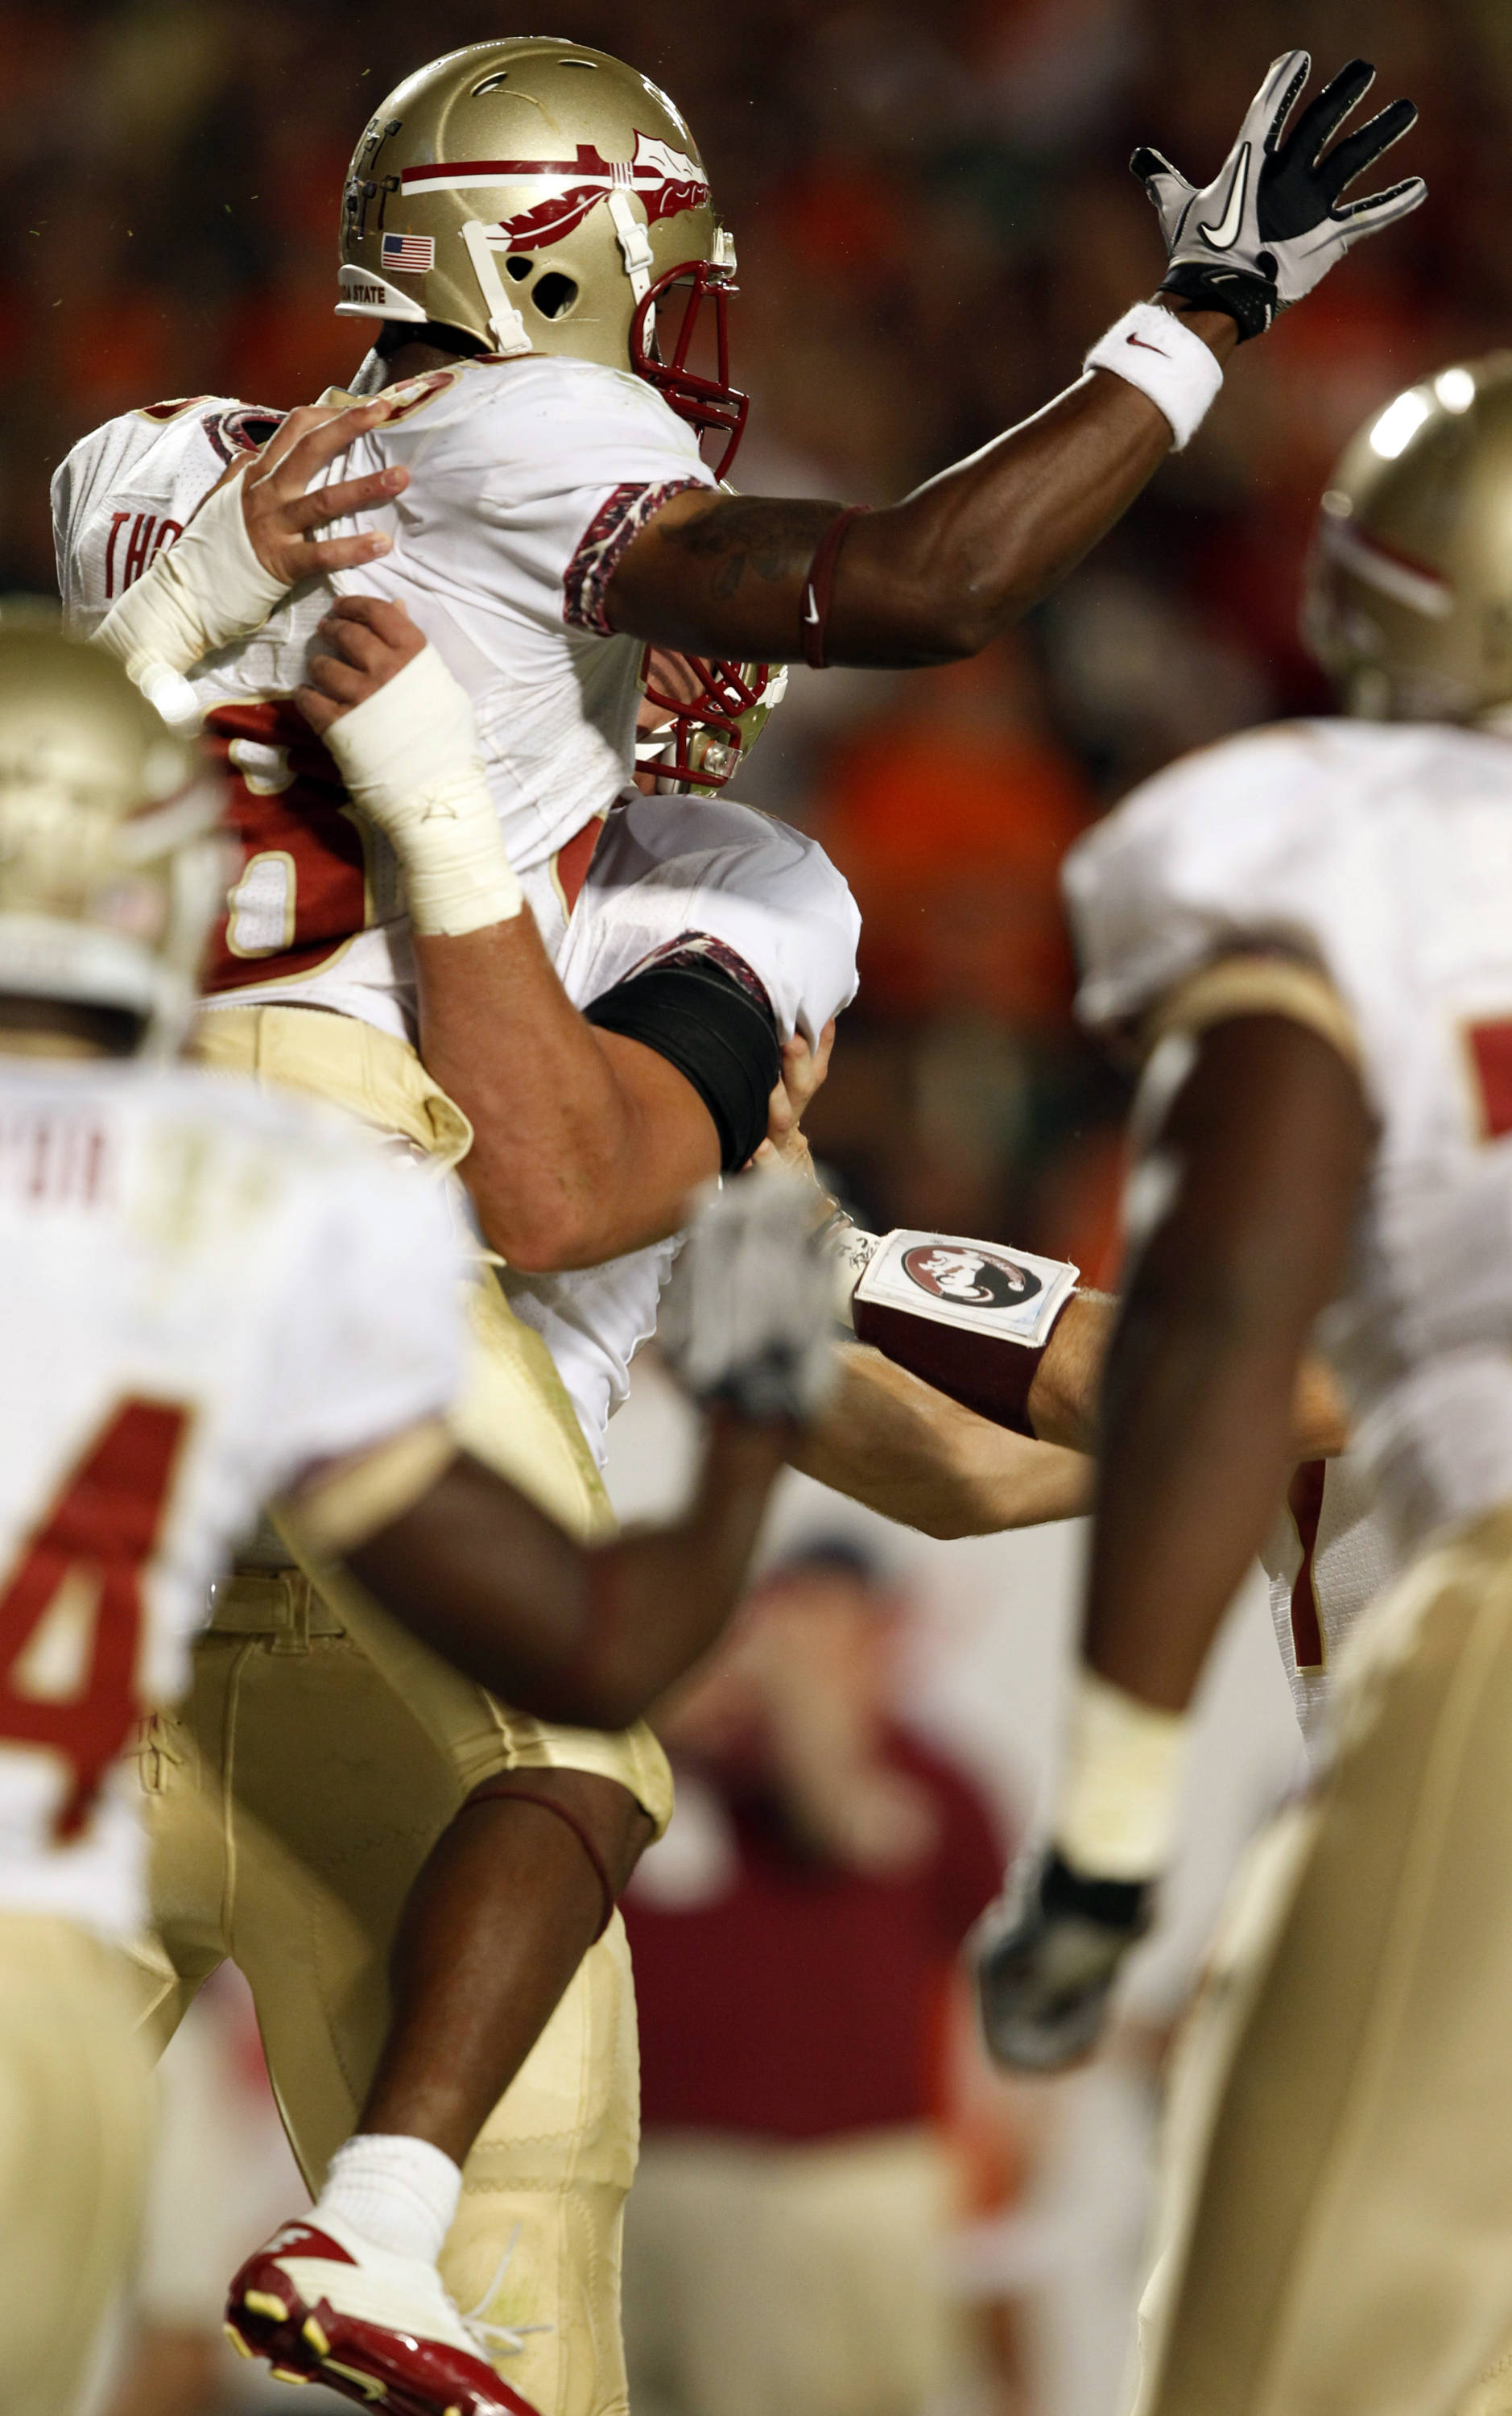 Florida State Seminoles running back Jermaine Thomas celebrates after scoring a touchdown.